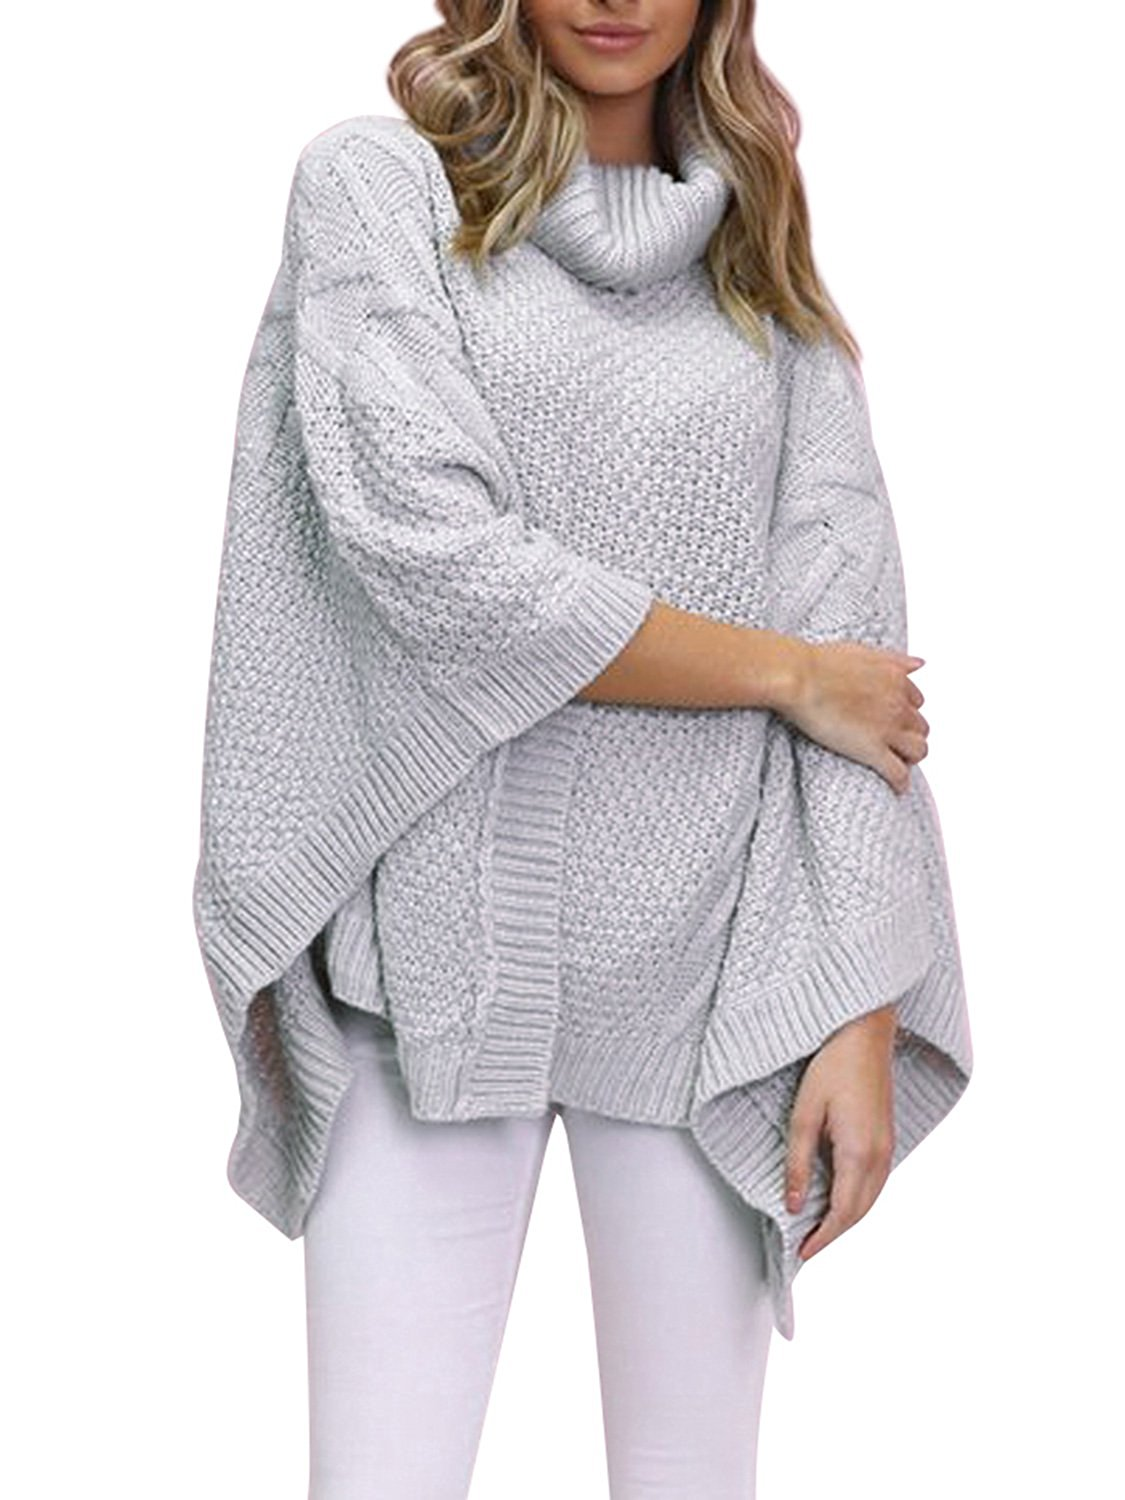 1390df52f Get Quotations · Simplee Womens Oversized Turtleneck Pullover Sweater  Winter Knitted Poncho Capes